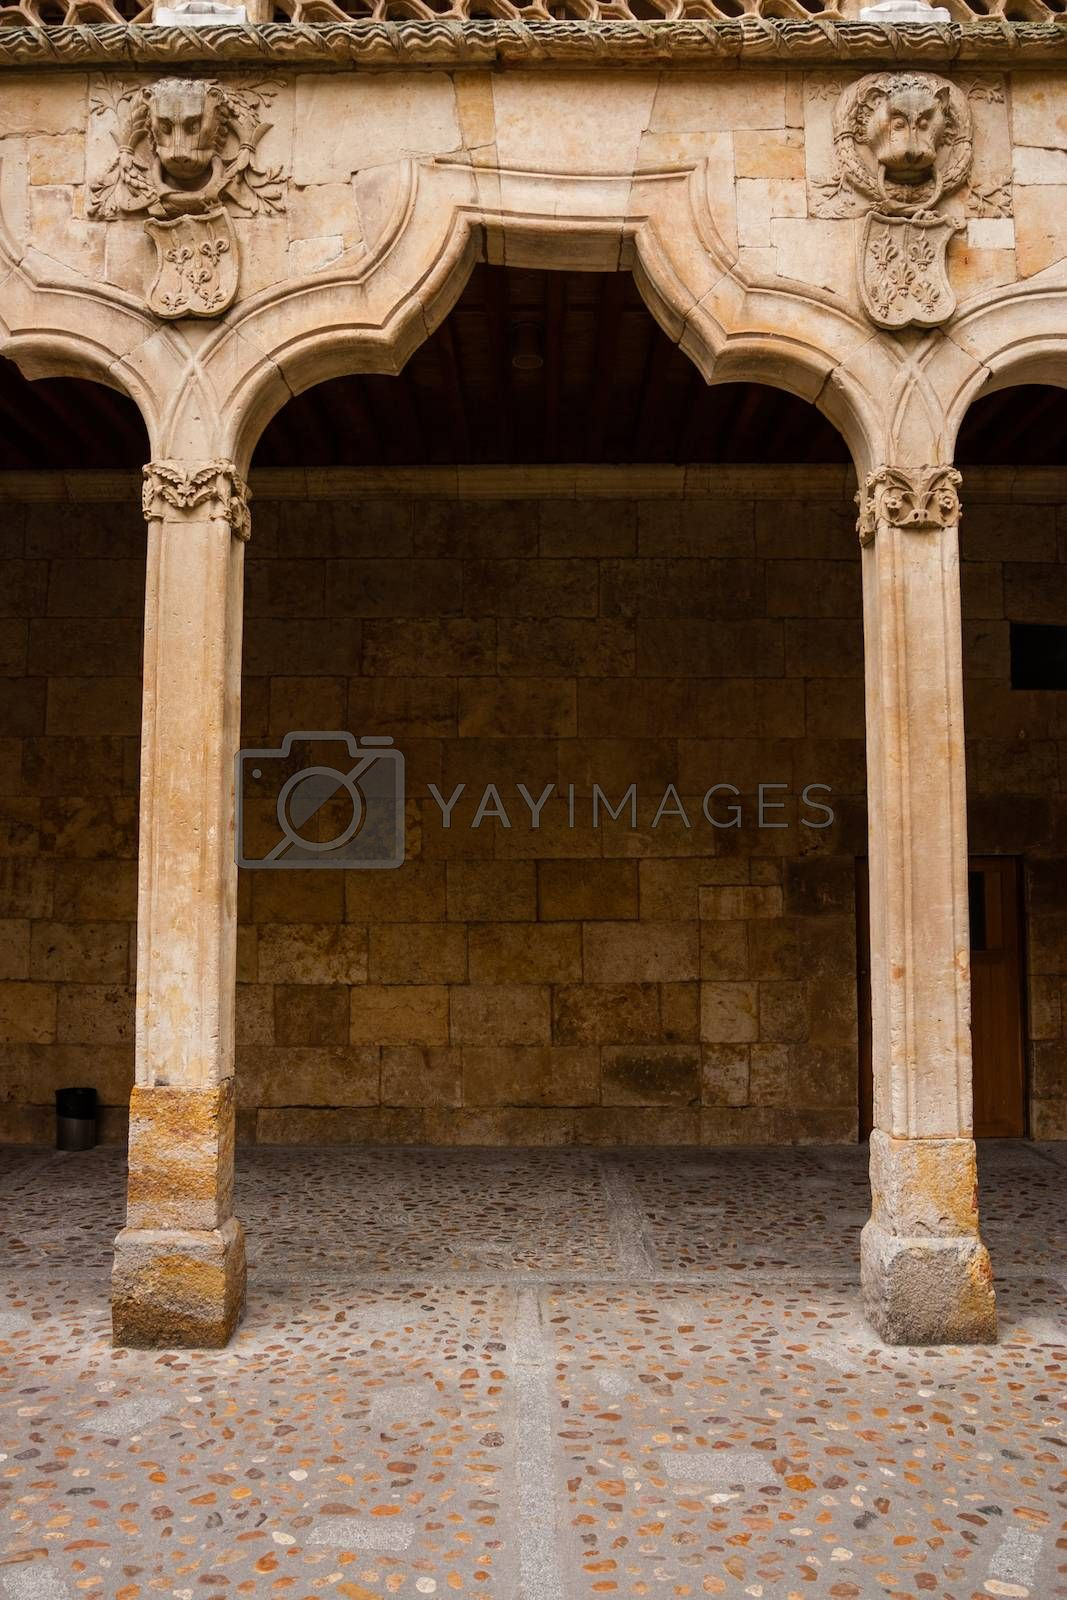 Detail capture showing the complex odd shape archery of the cloister in the Patio de Escuelas Menores in old Salamanca University buildings, Spain